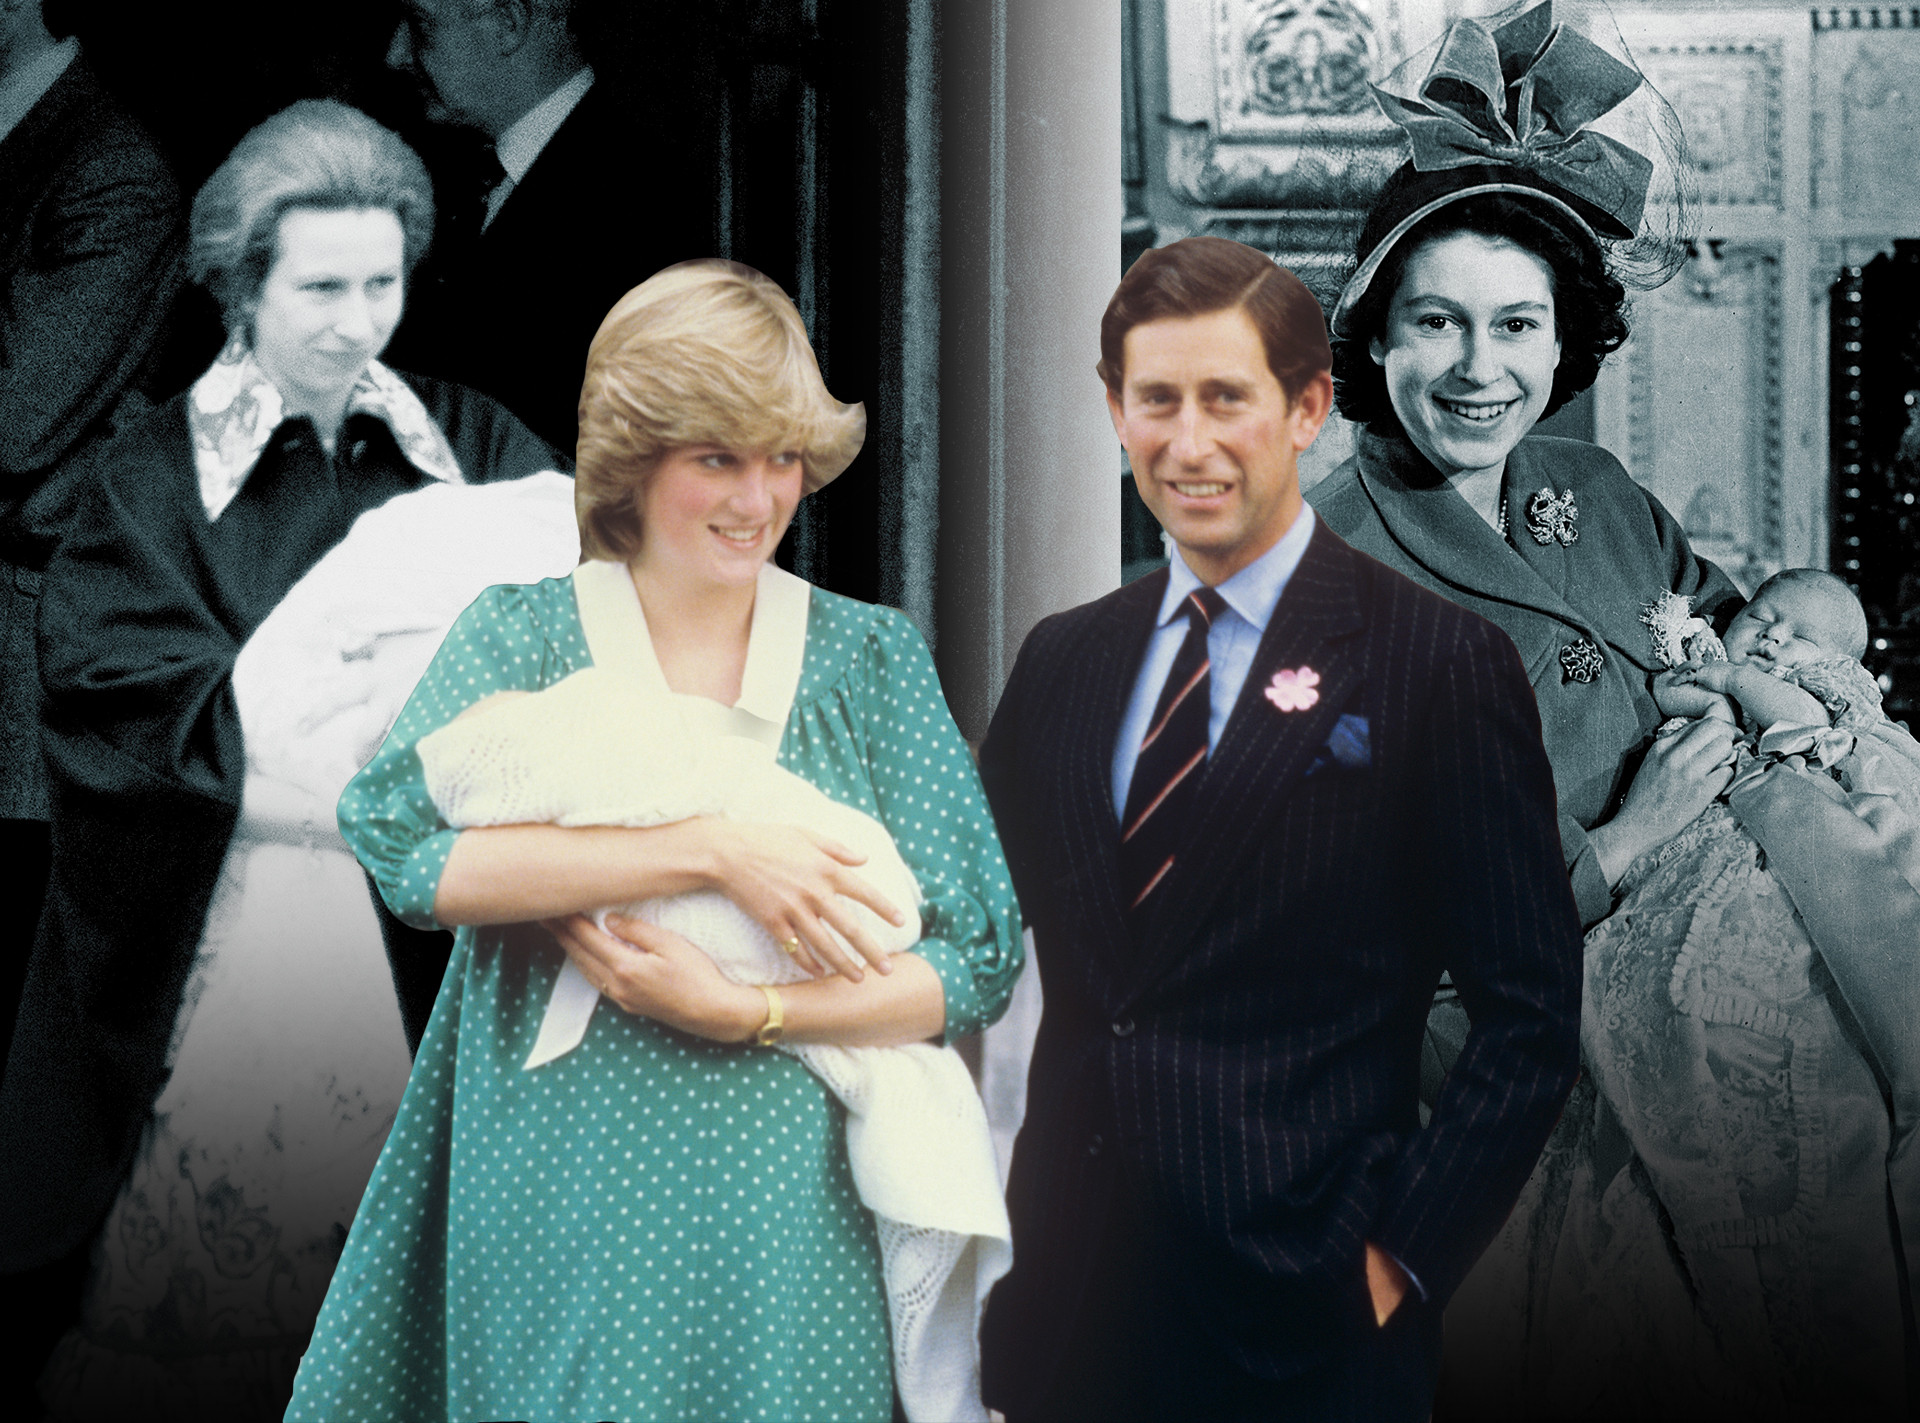 From the Queen Mother Mystery Birth to Diana's Private